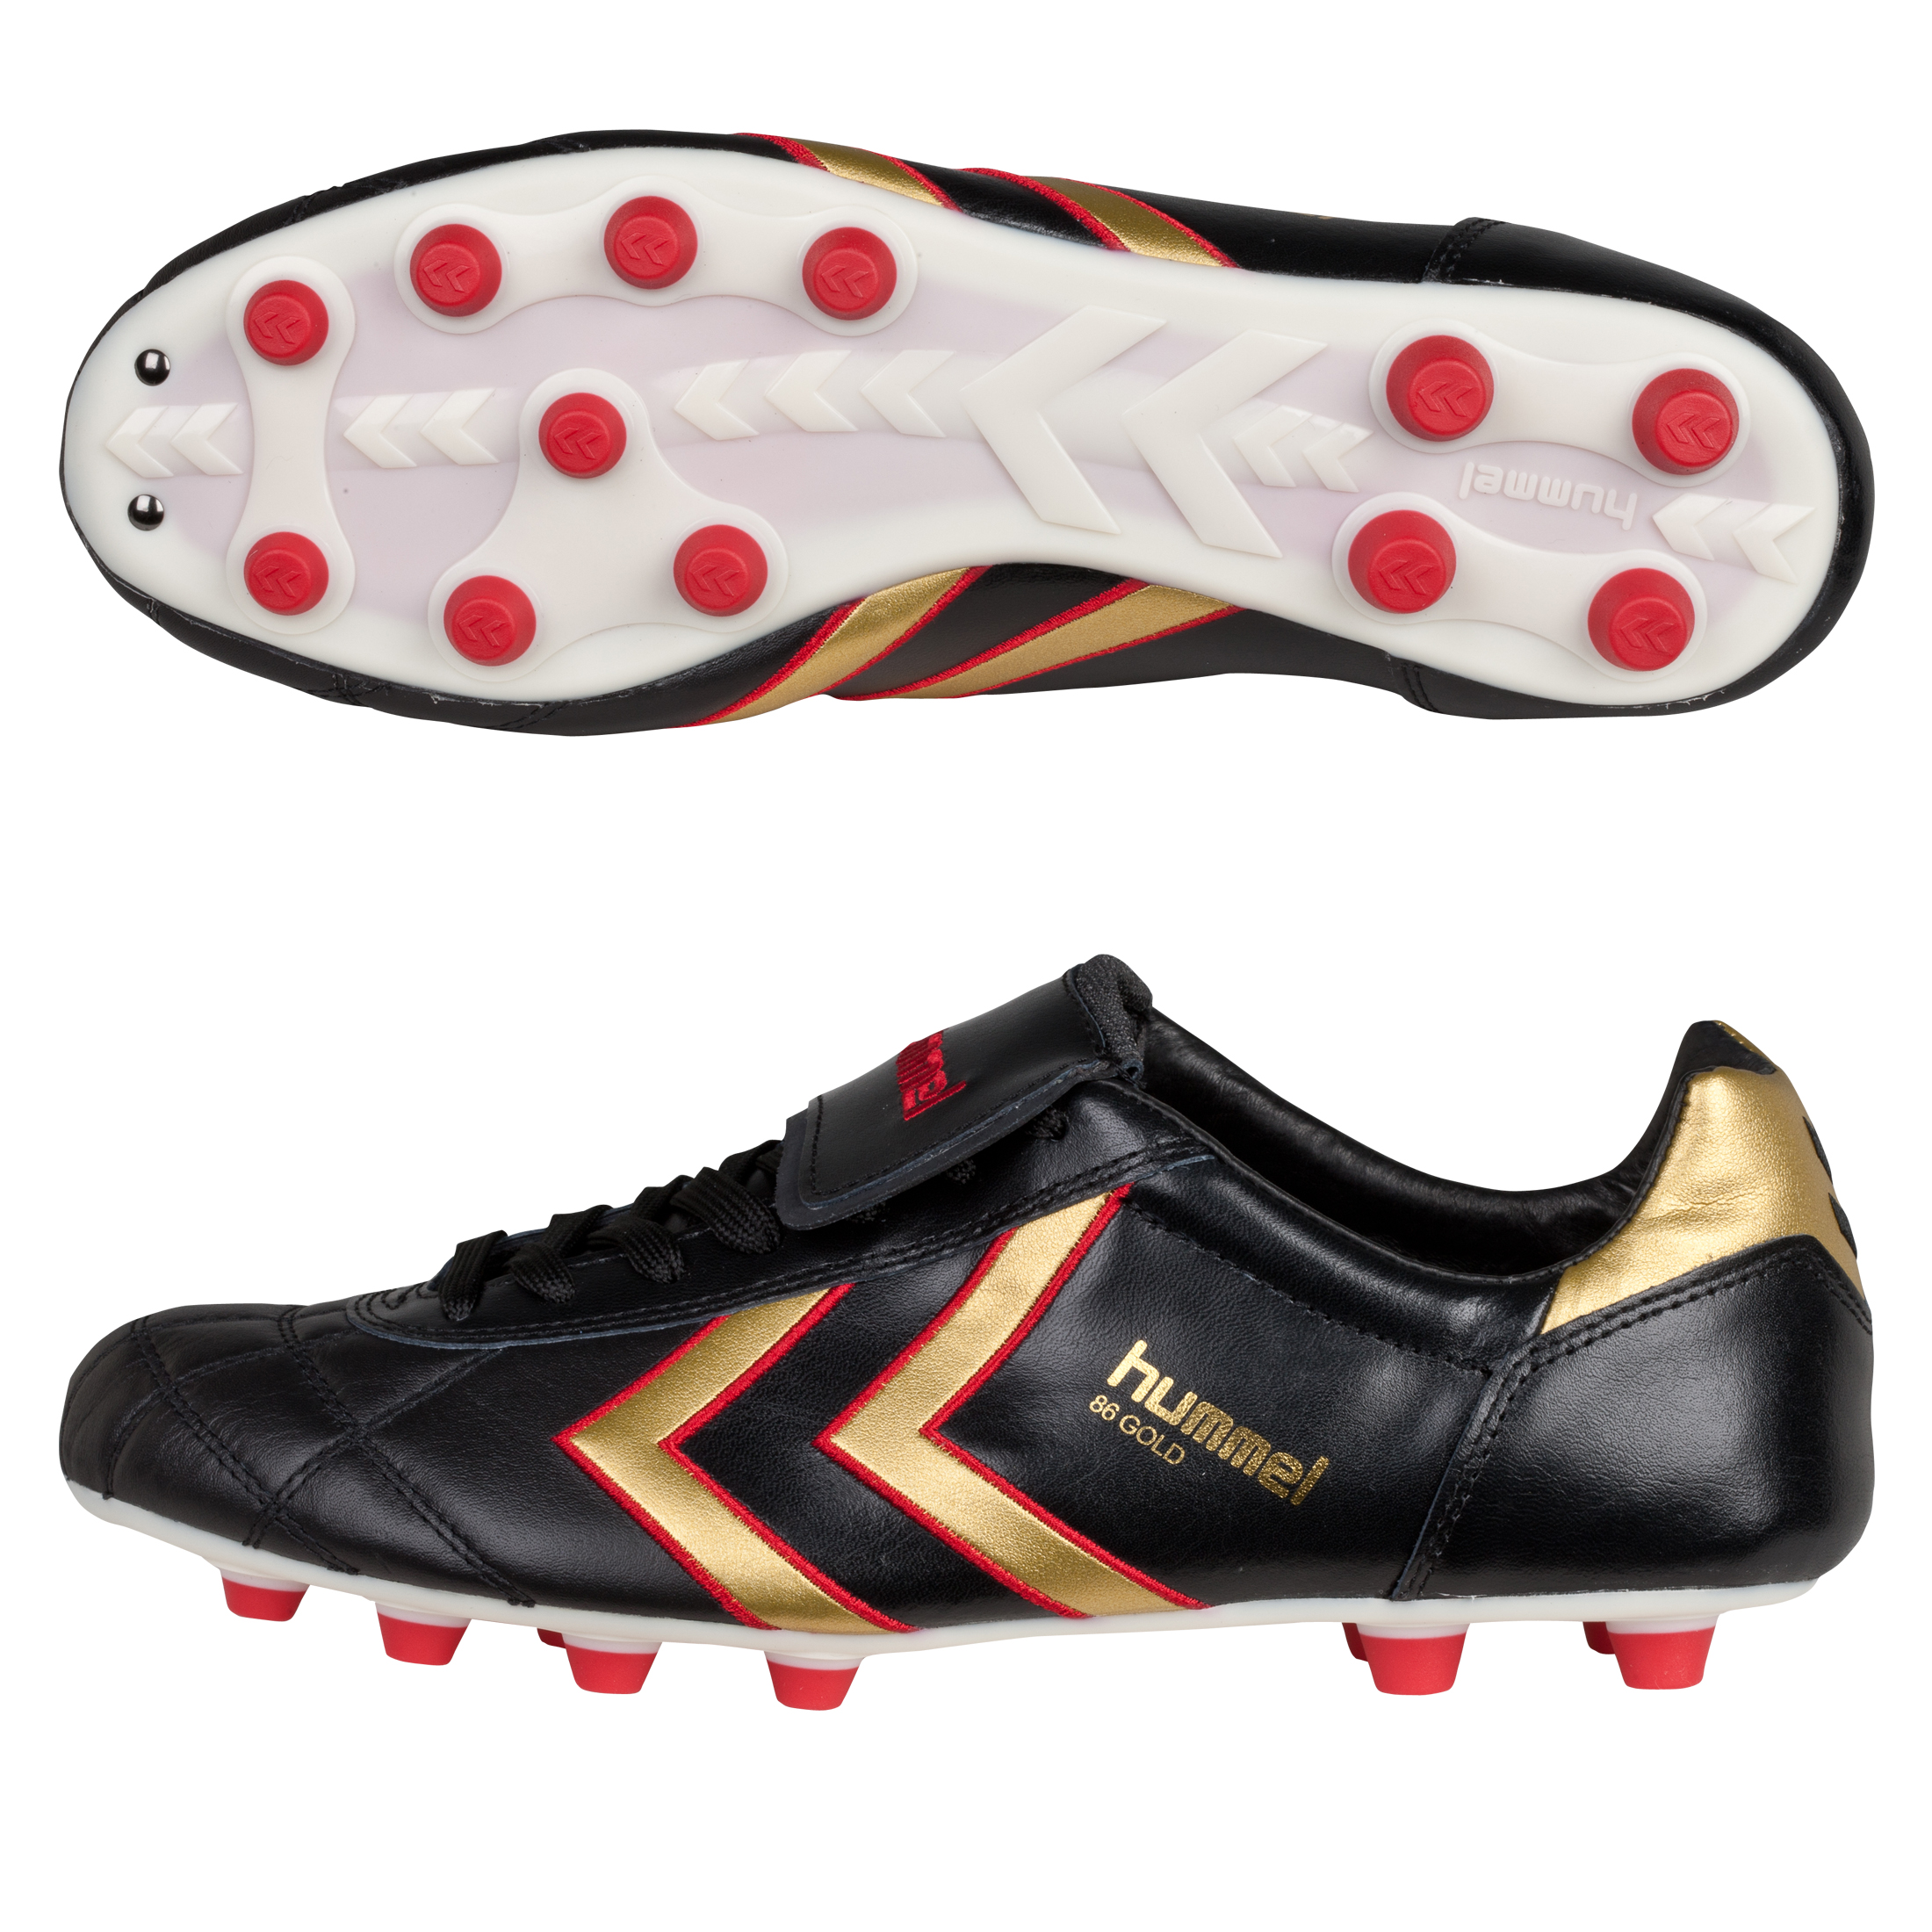 Hummel Gold 86 Firm Ground Football Boots - Black/Gold